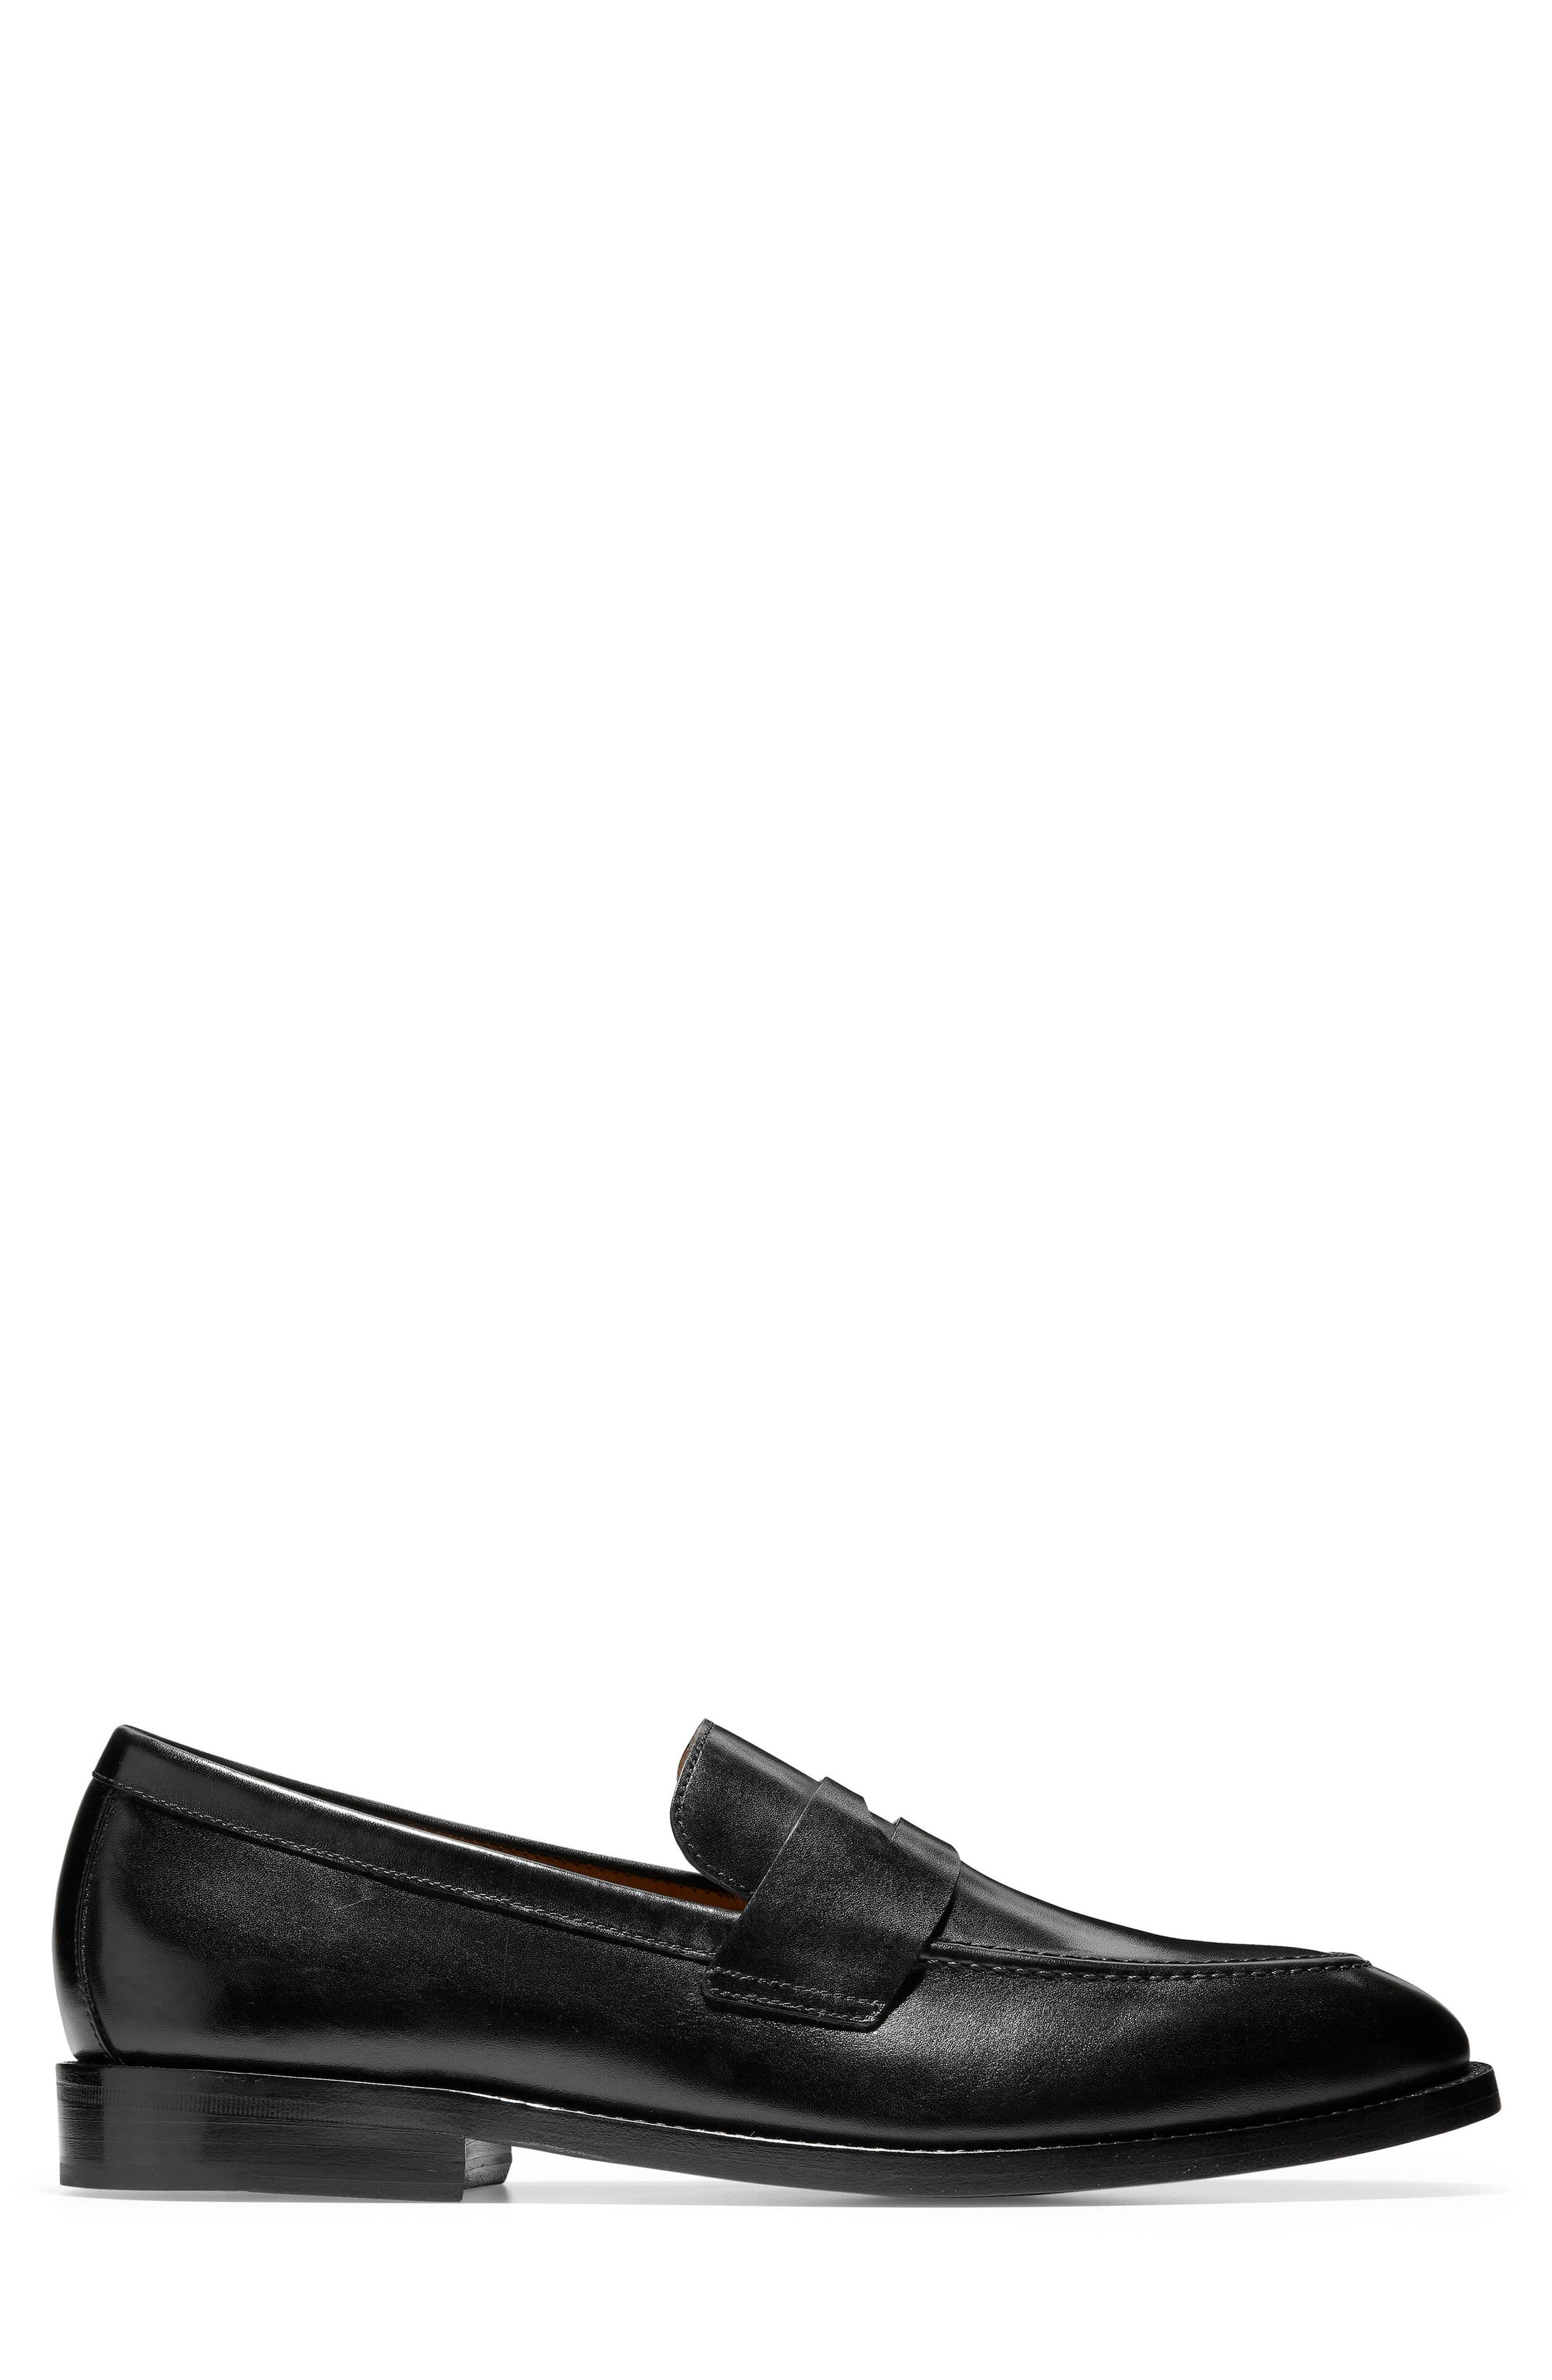 COLE HAAN, American Classics Kneeland Penny Loafer, Alternate thumbnail 3, color, BLACK LEATHER